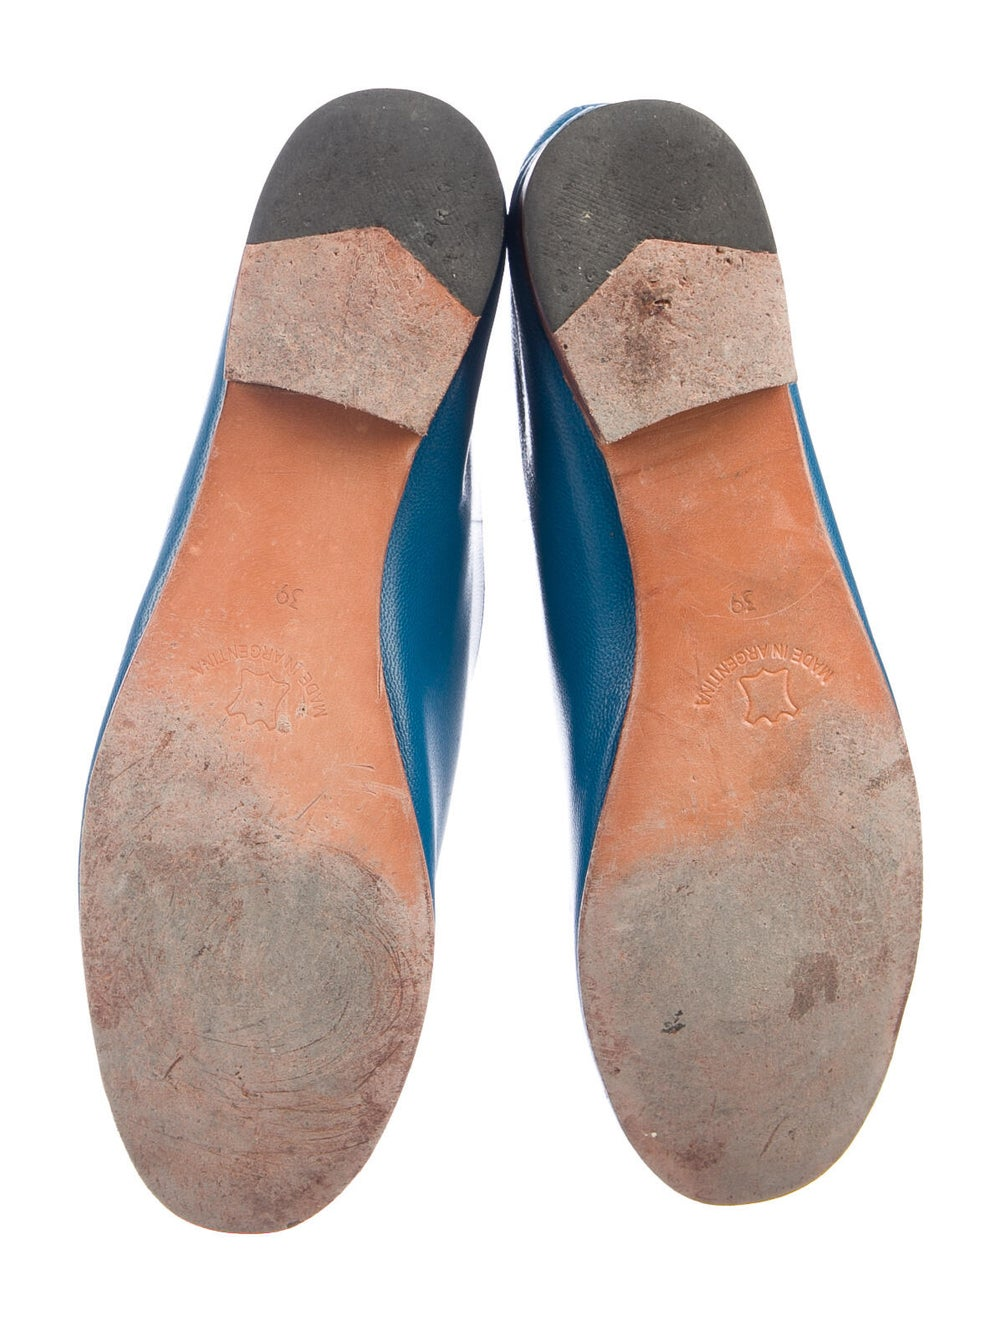 Martiniano Leather Flats Blue - image 5